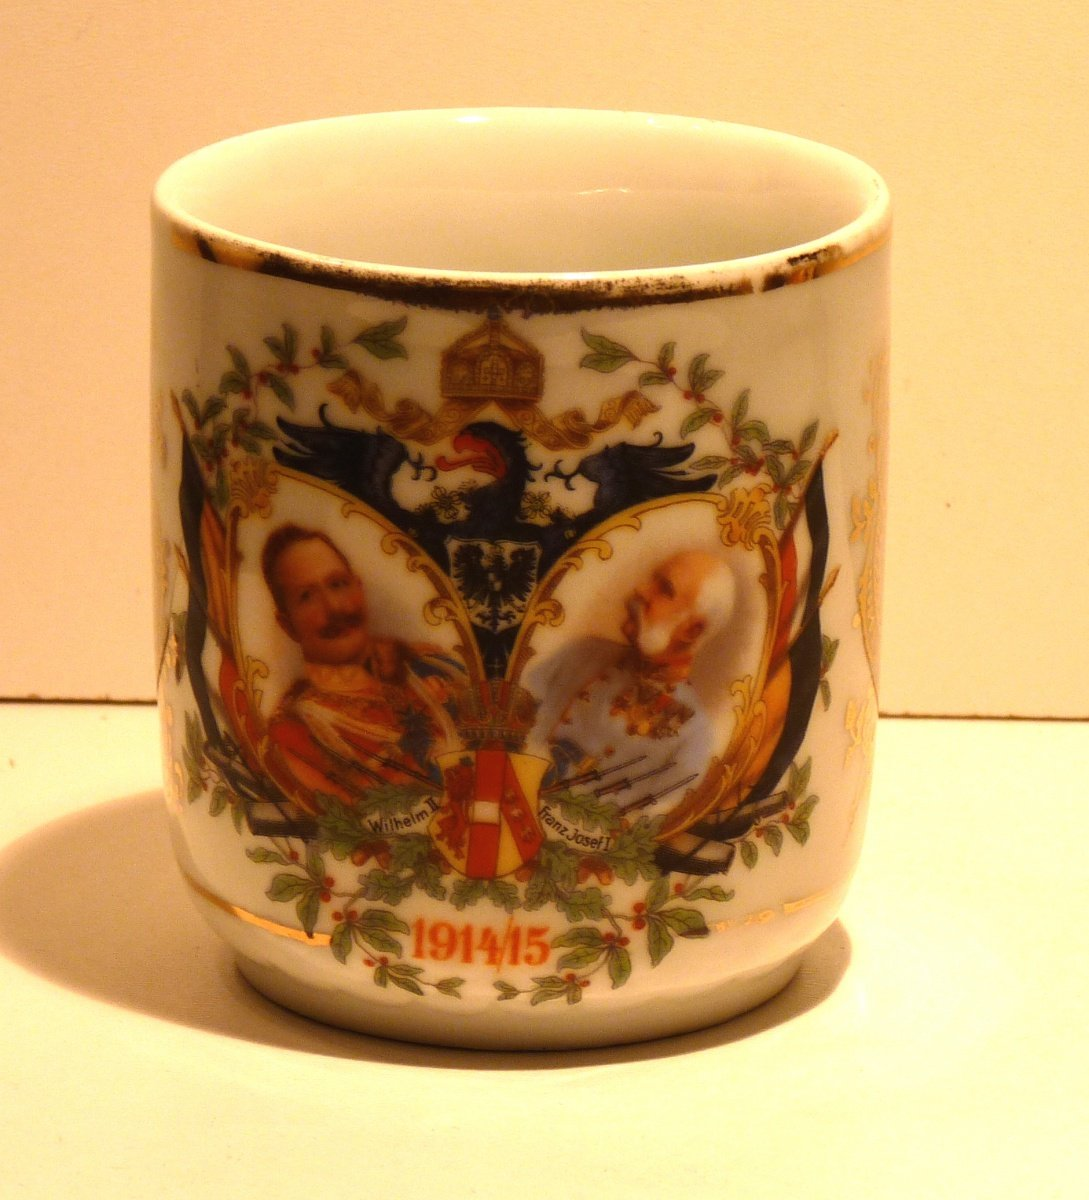 Cup with portraits of two emperors